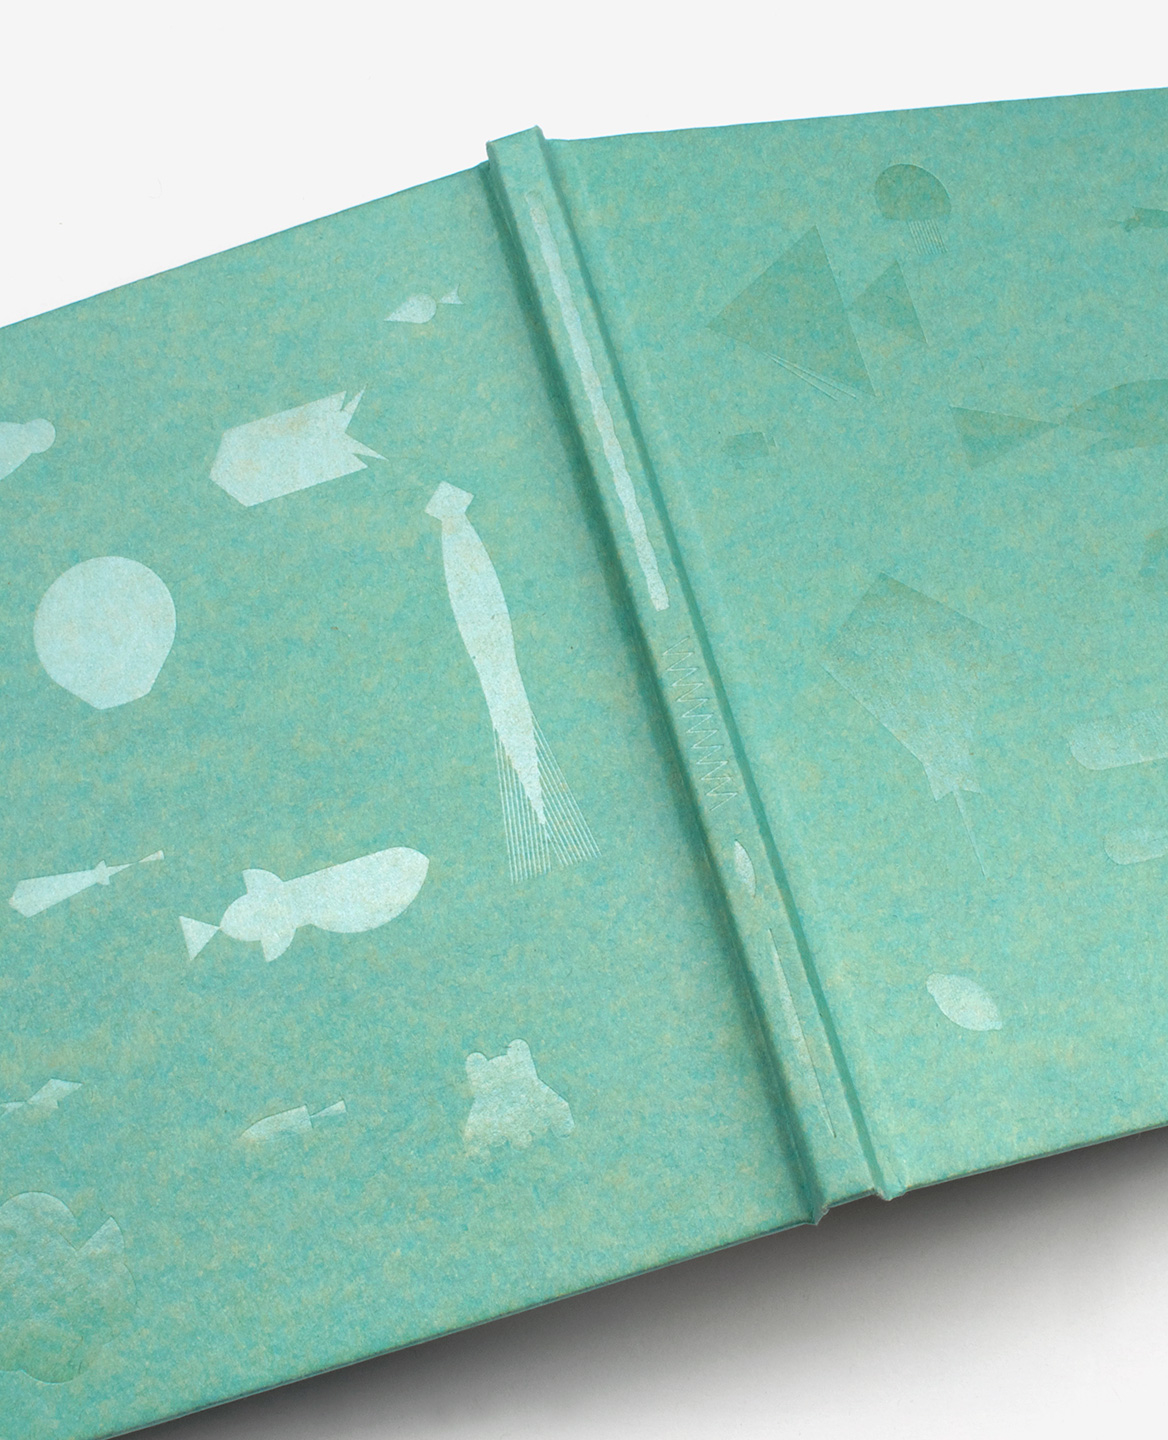 Detail of the transparent foil on the cover of the book Aquarium by Fanette Mellier published by Éditions du livre